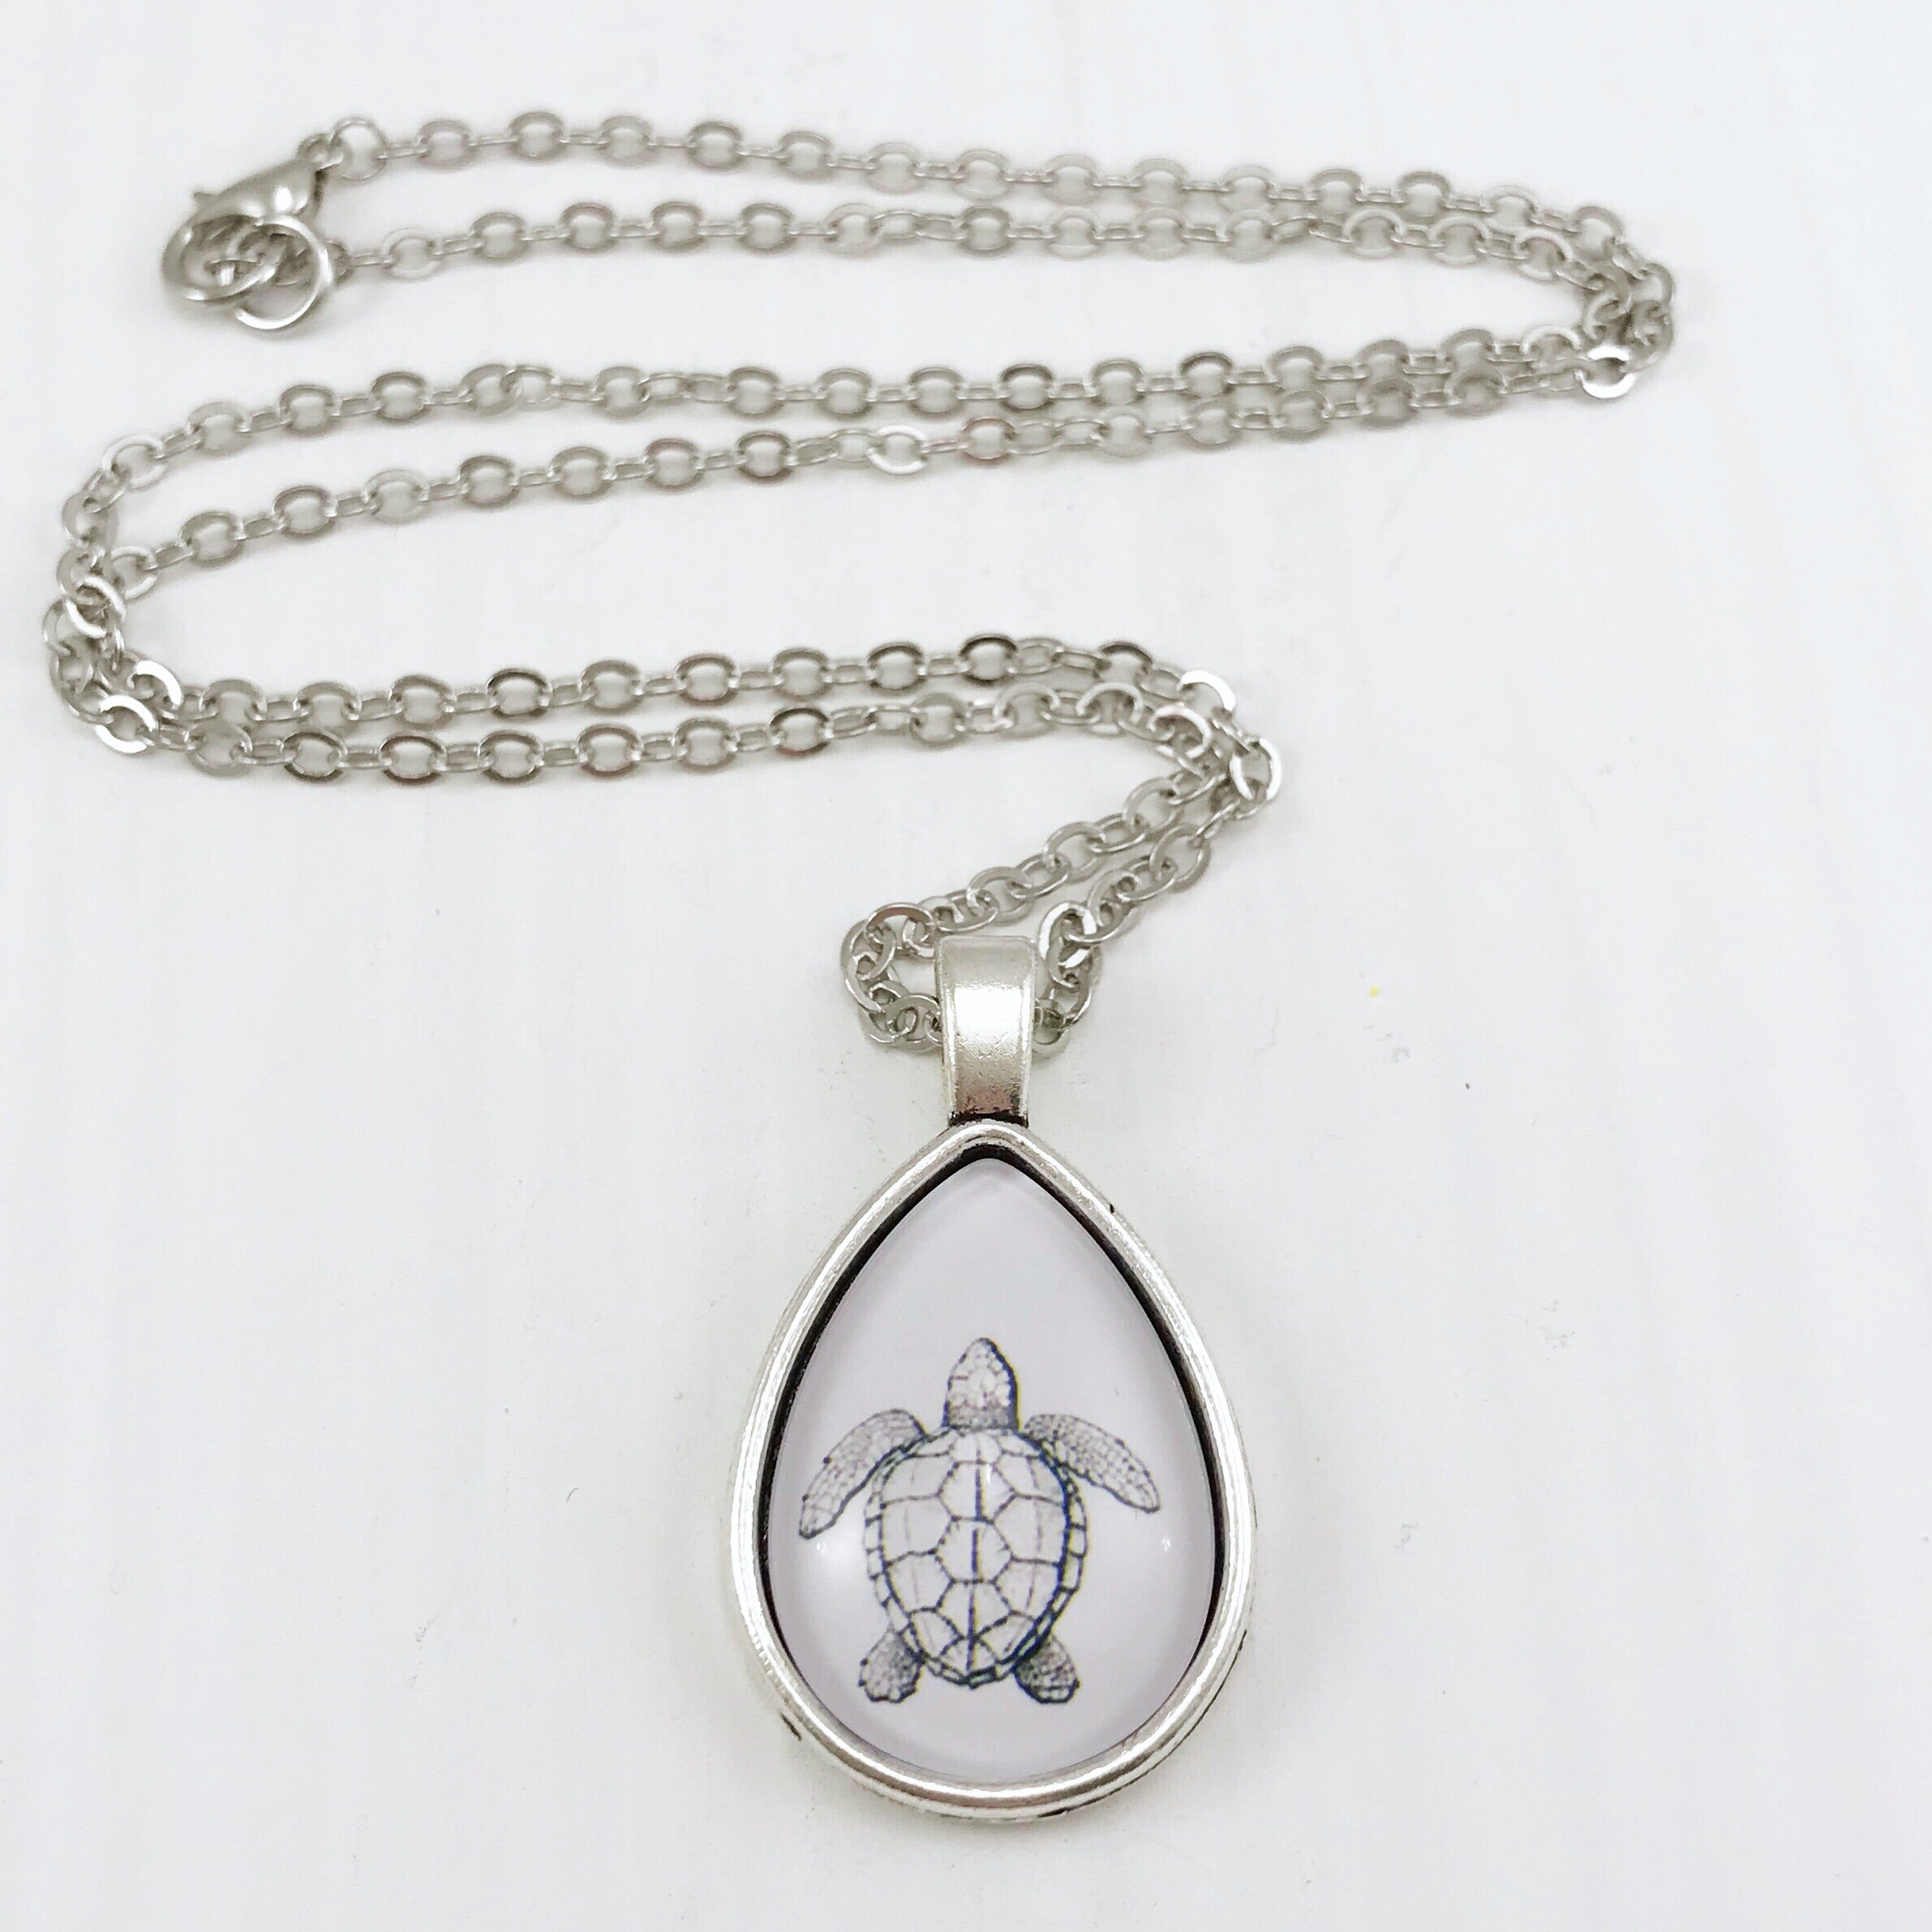 Turtle Teardrop Necklace - Antique Silver